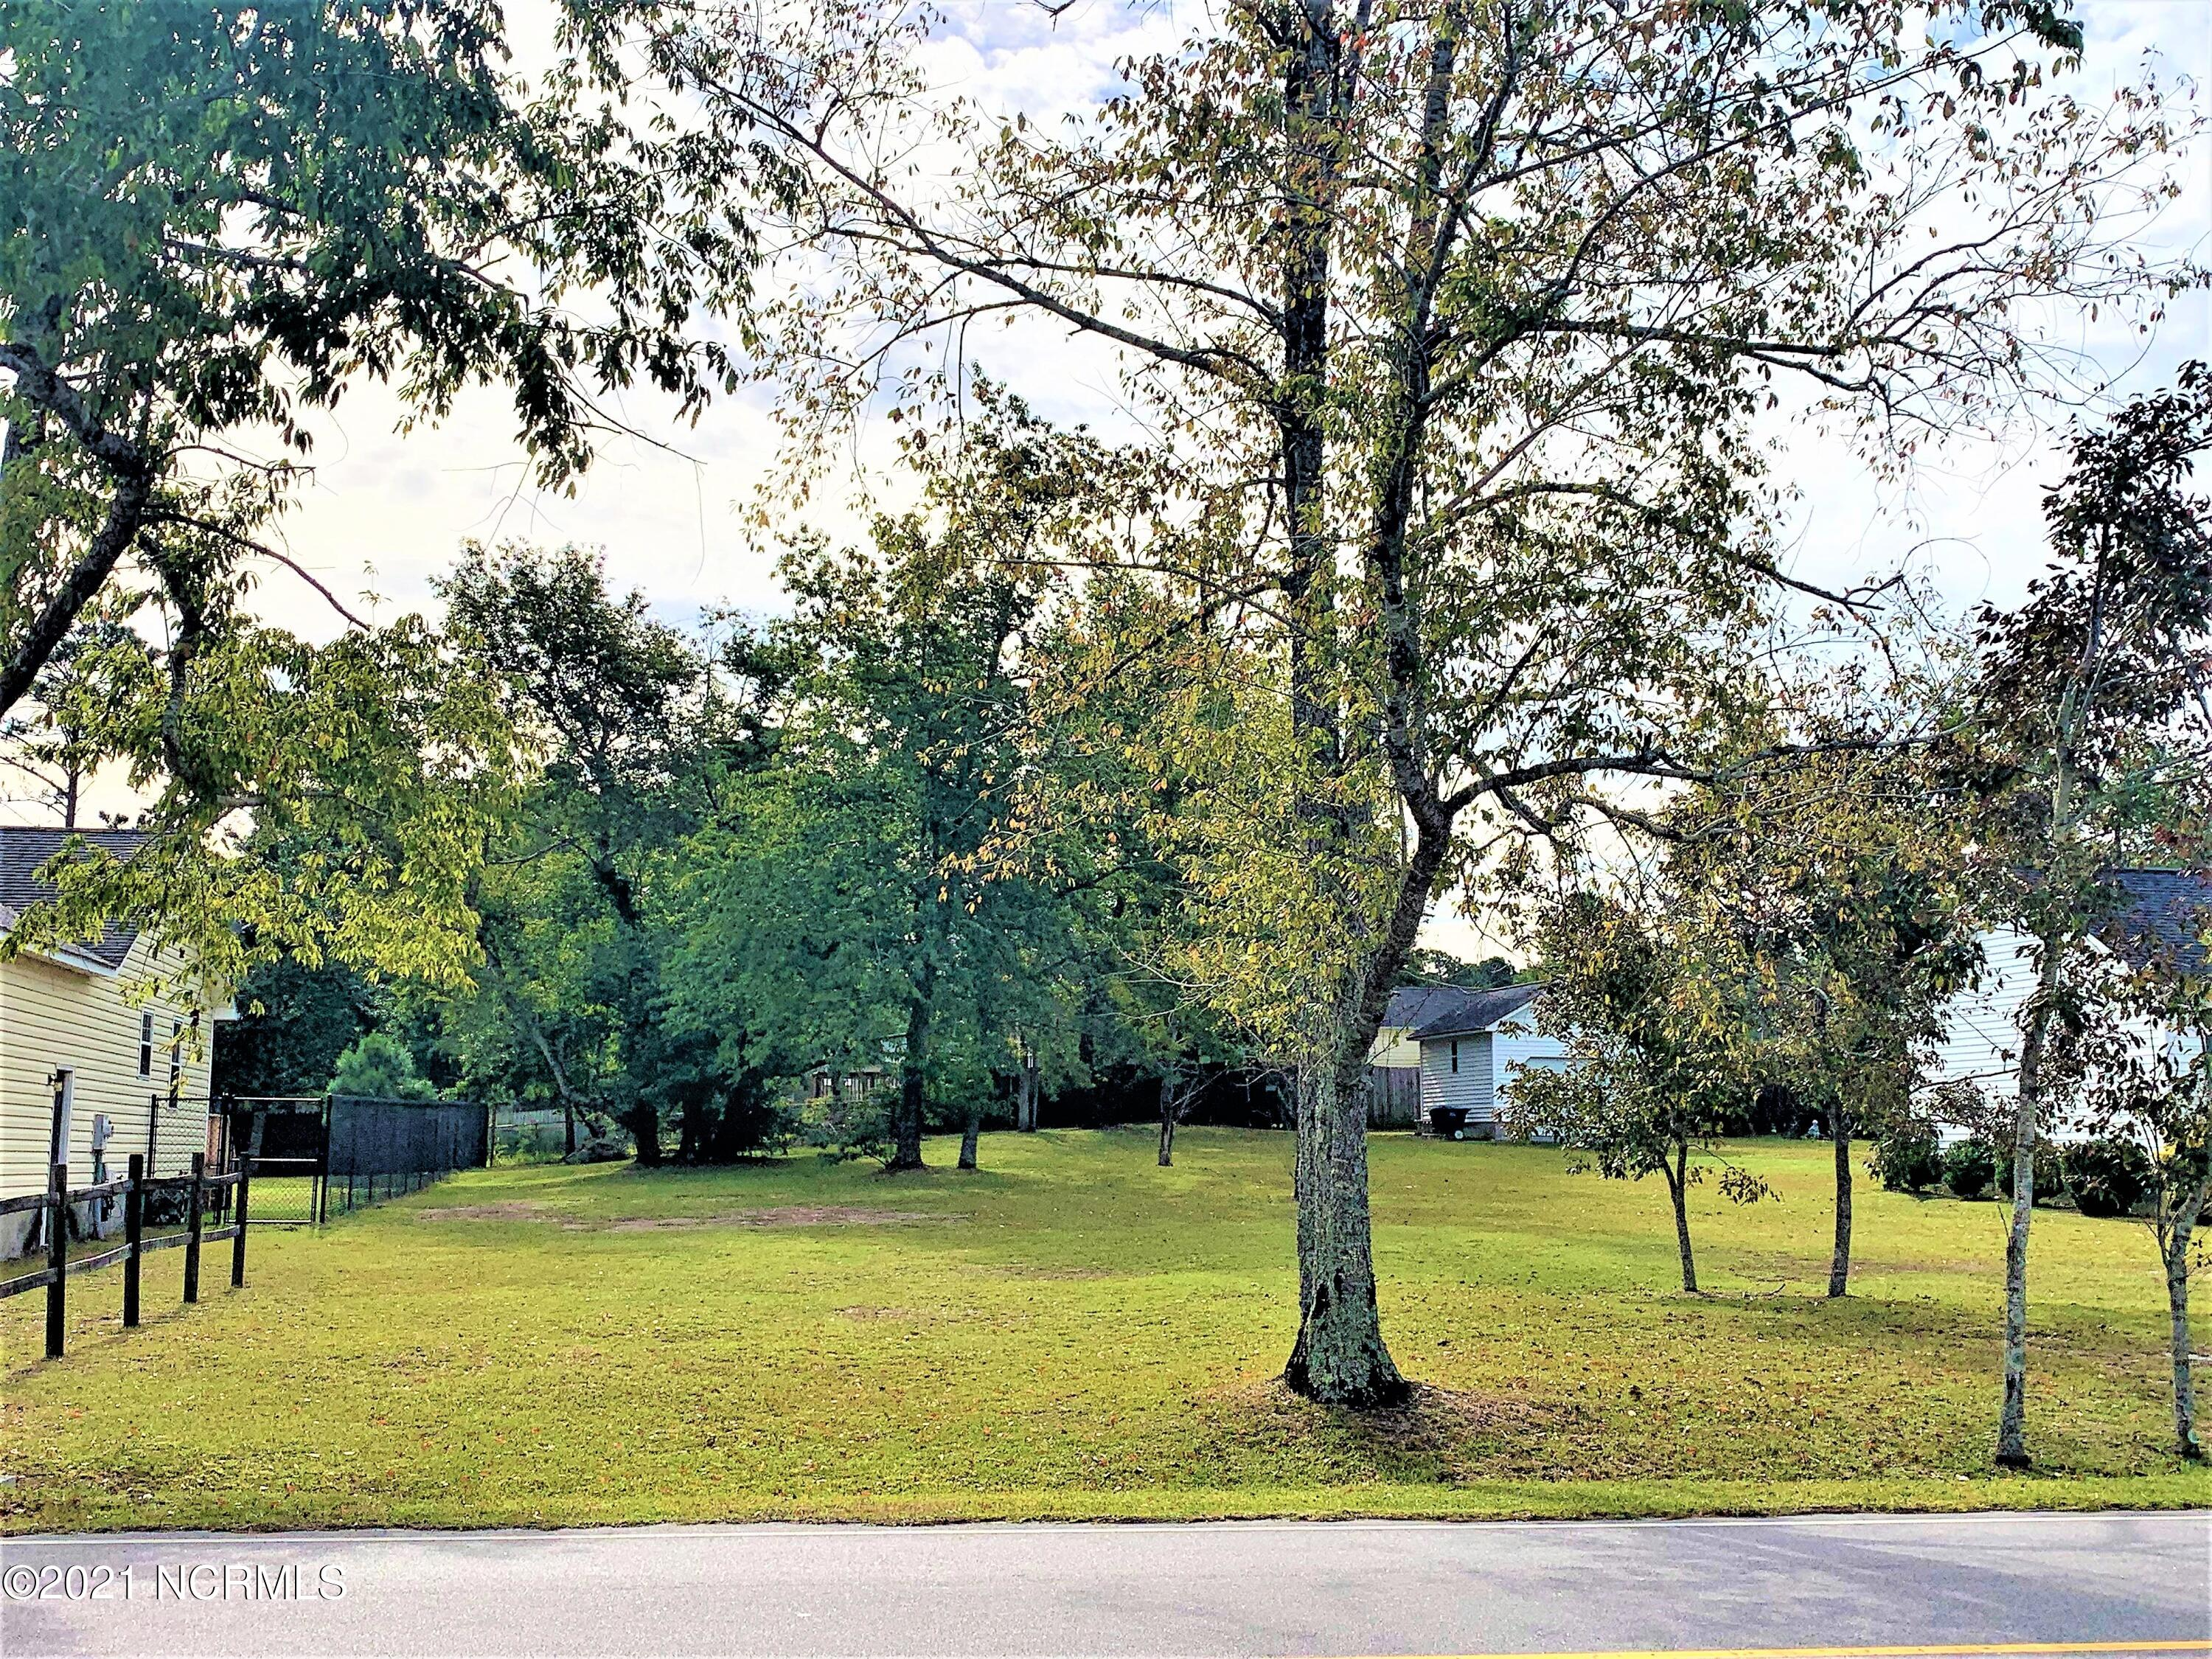 Here's the perfect opportunity to build your dream home on a .35 acre cleared lot. The lot is part of the Wood Creek Estates subdivision and comes with no HOA and no city taxes! Close to the bases, beaches, and the historic town of Swansboro. Come see it anytime!